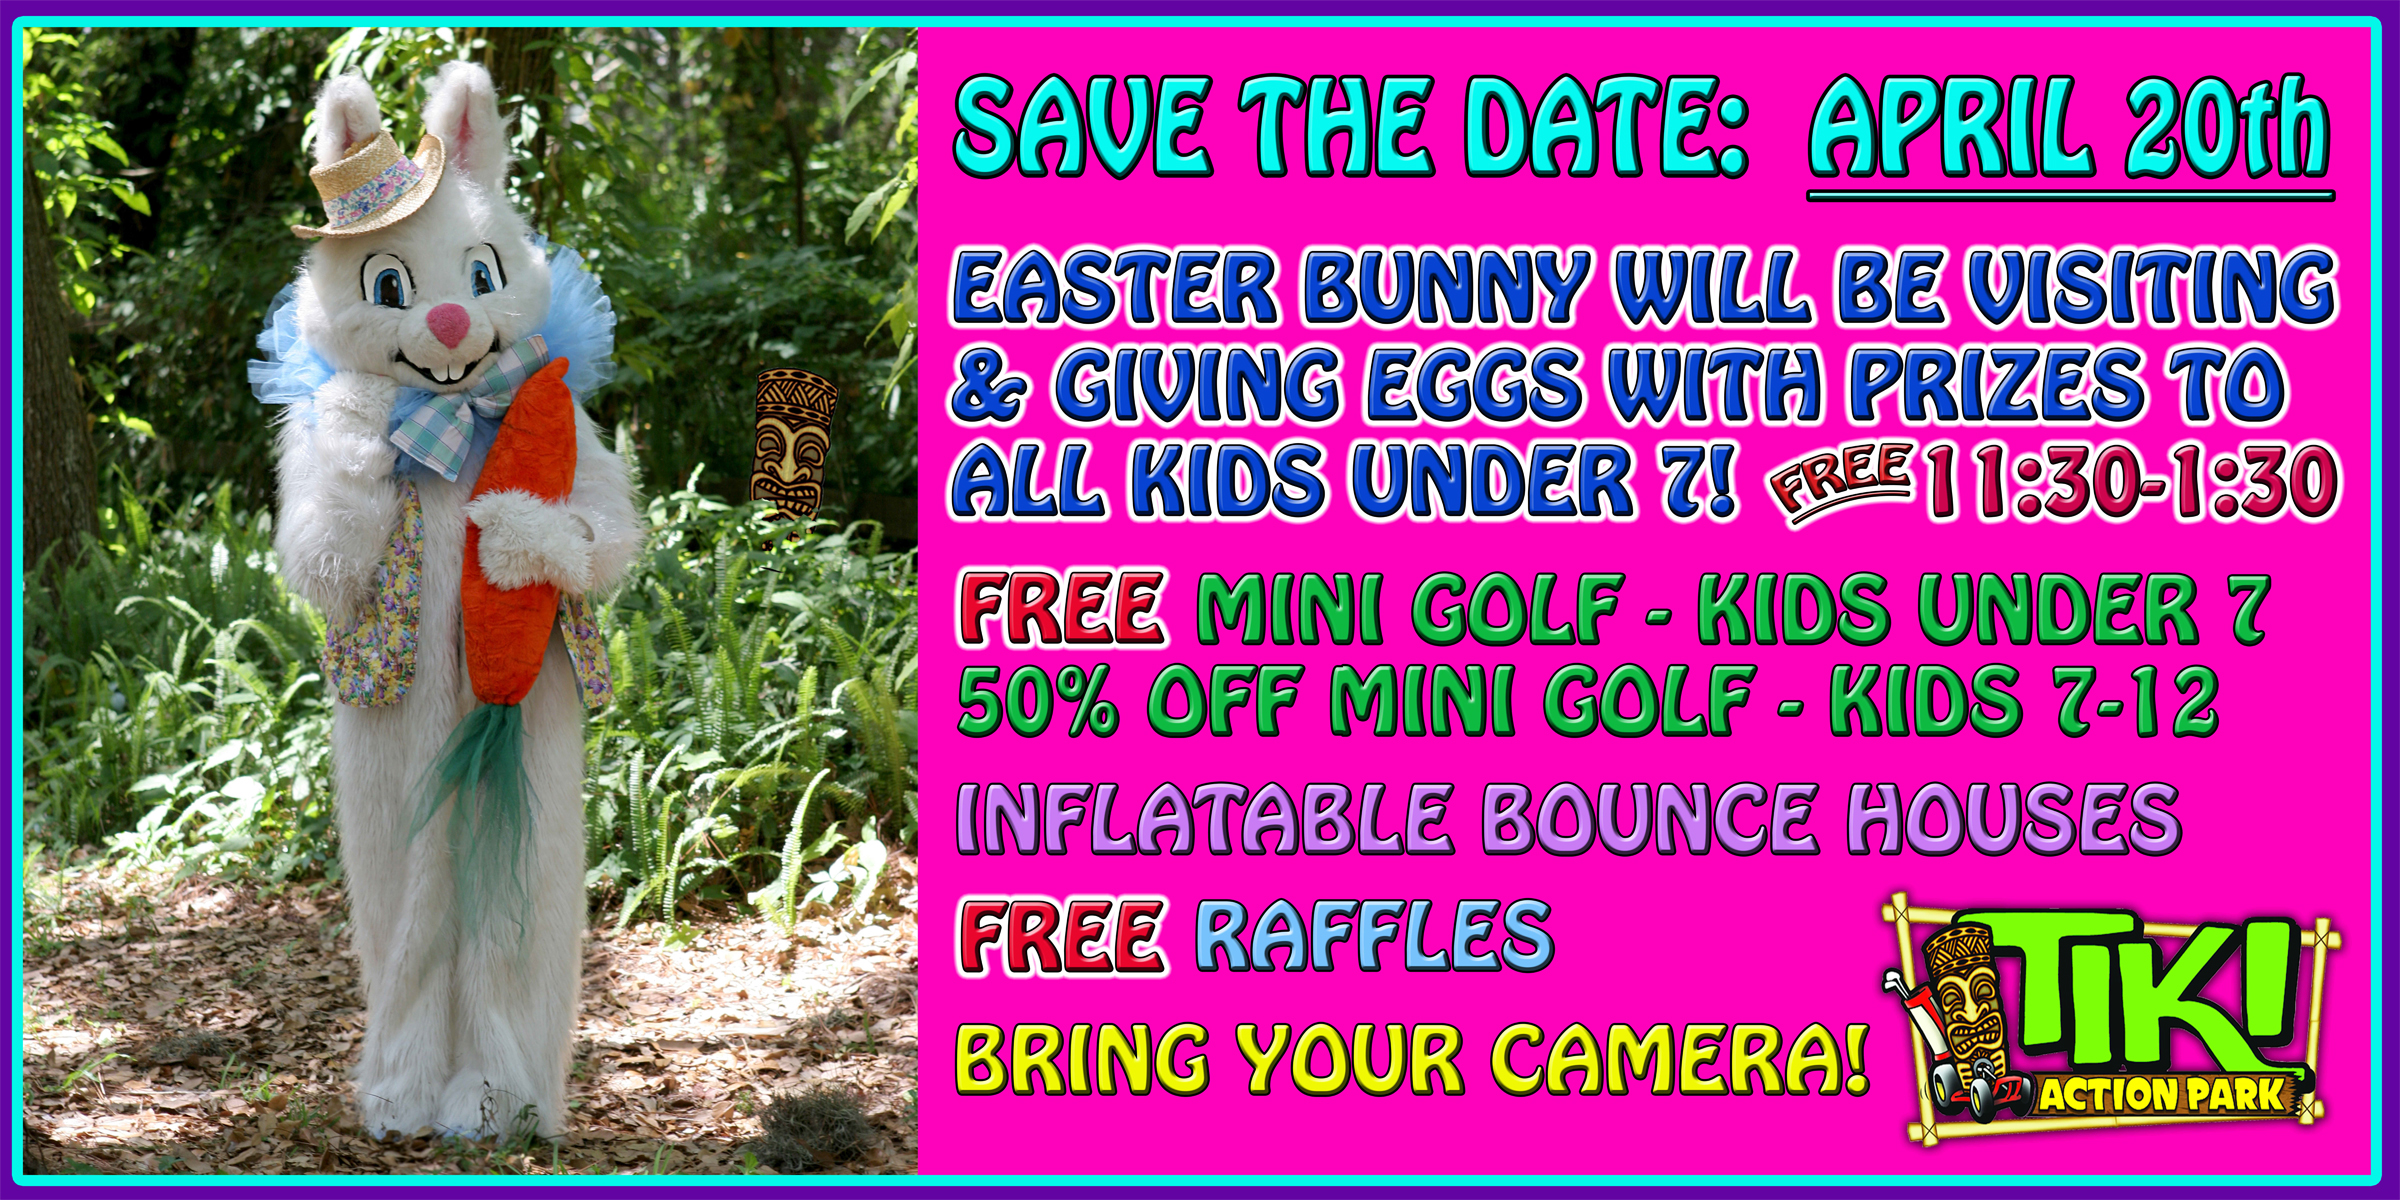 Tiki Action Park Meet The Easter Bunny Flyer.